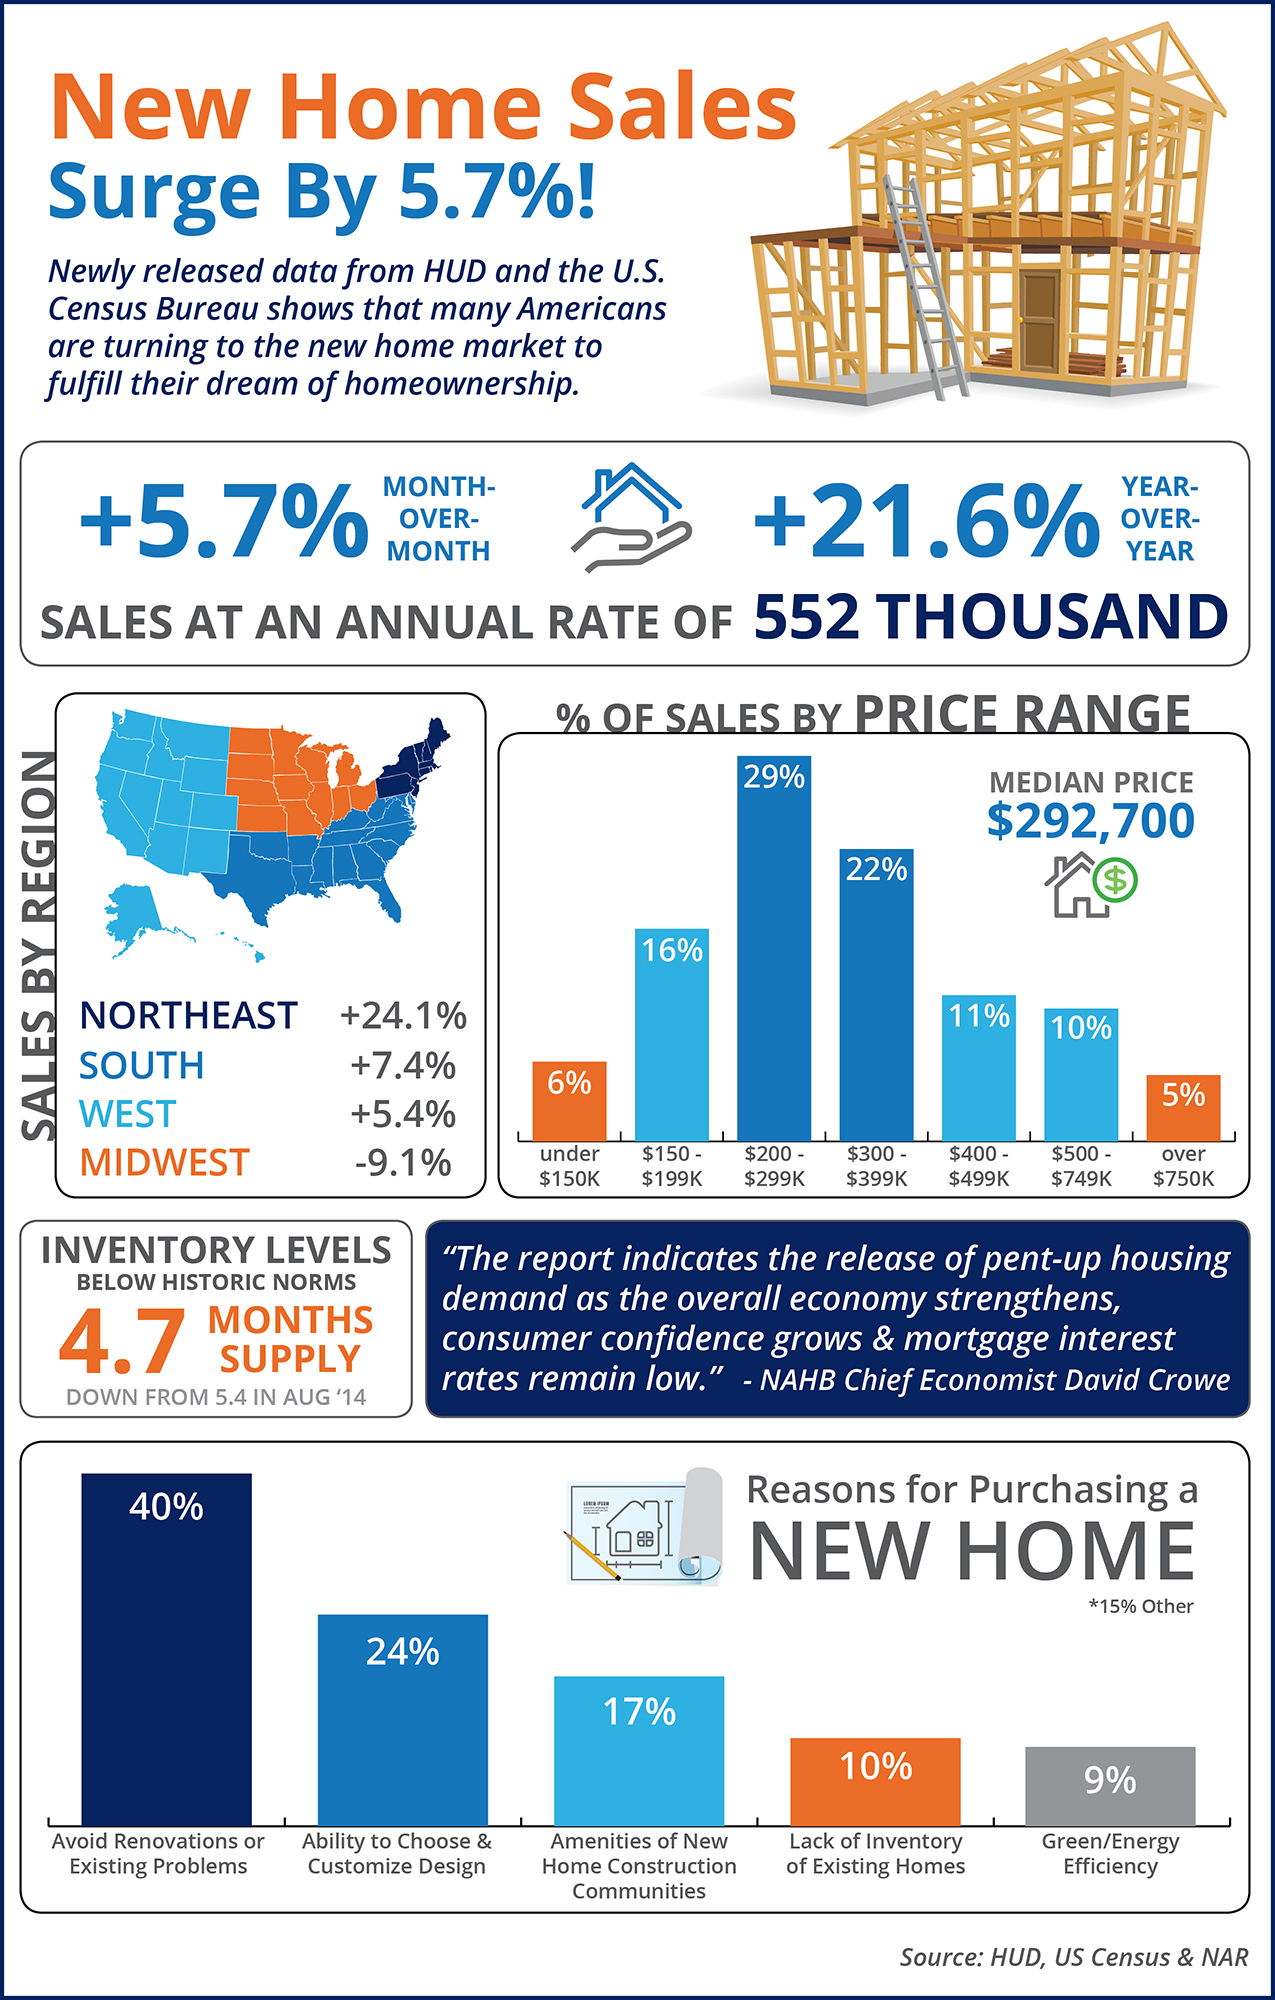 New Home Sales Surge By 5.7%! | Simplifying The Market